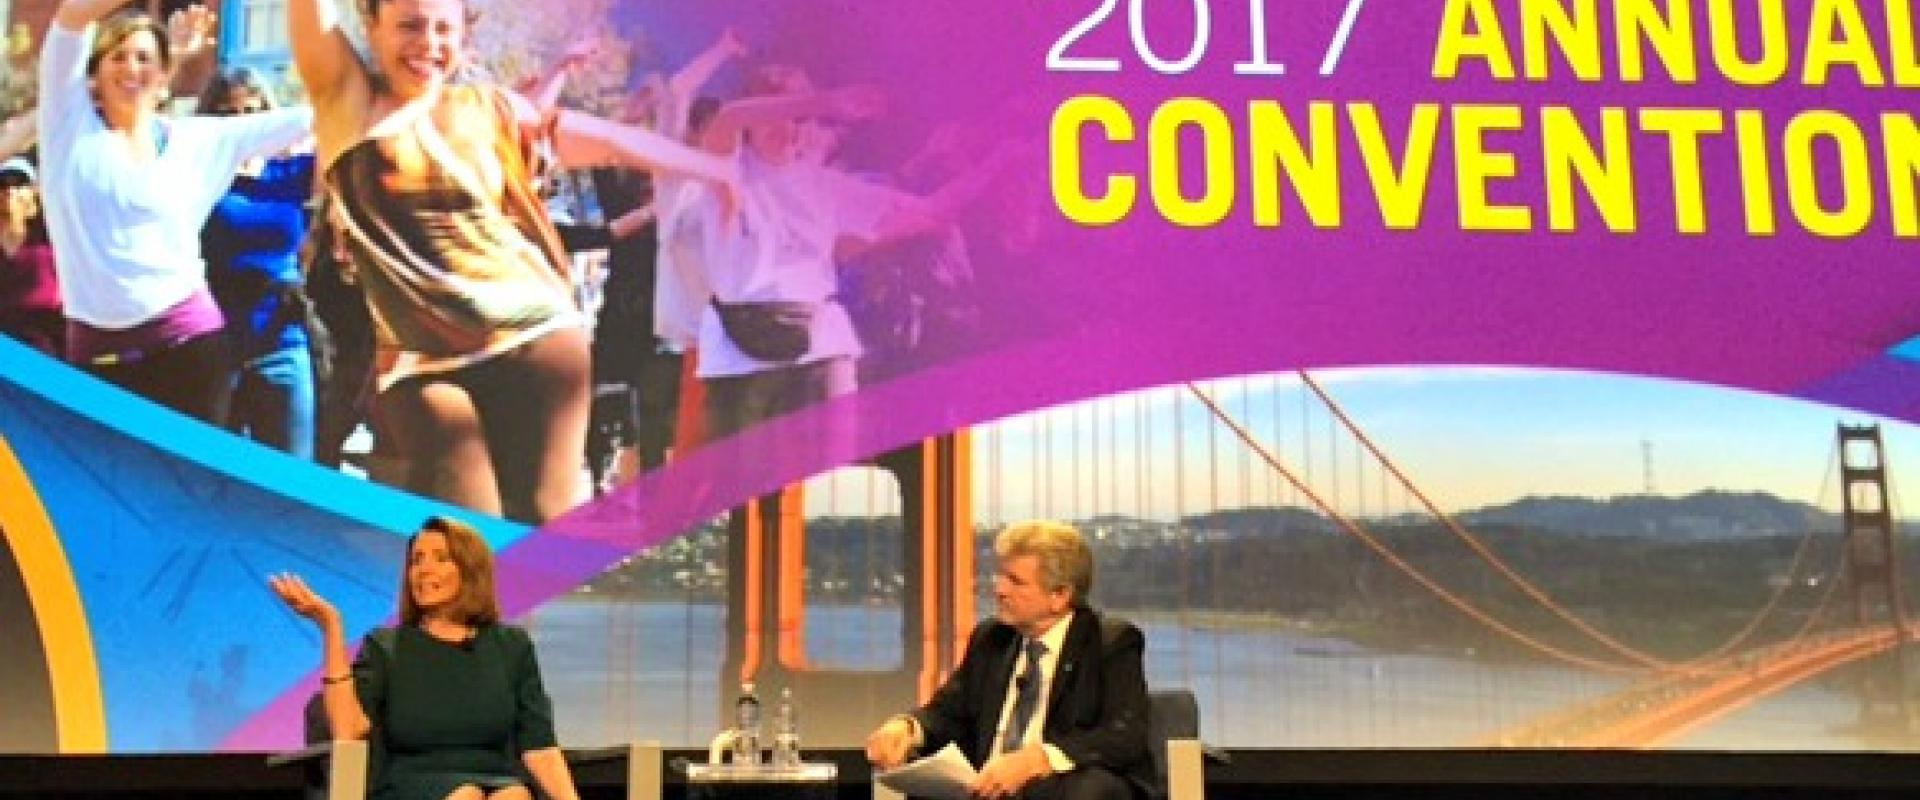 Congresswoman Pelosi joins President Bob Lynch at the 2017 Americans for the Arts Annual Convention discussing the importance of investing in the arts for our schools, communities and economy.